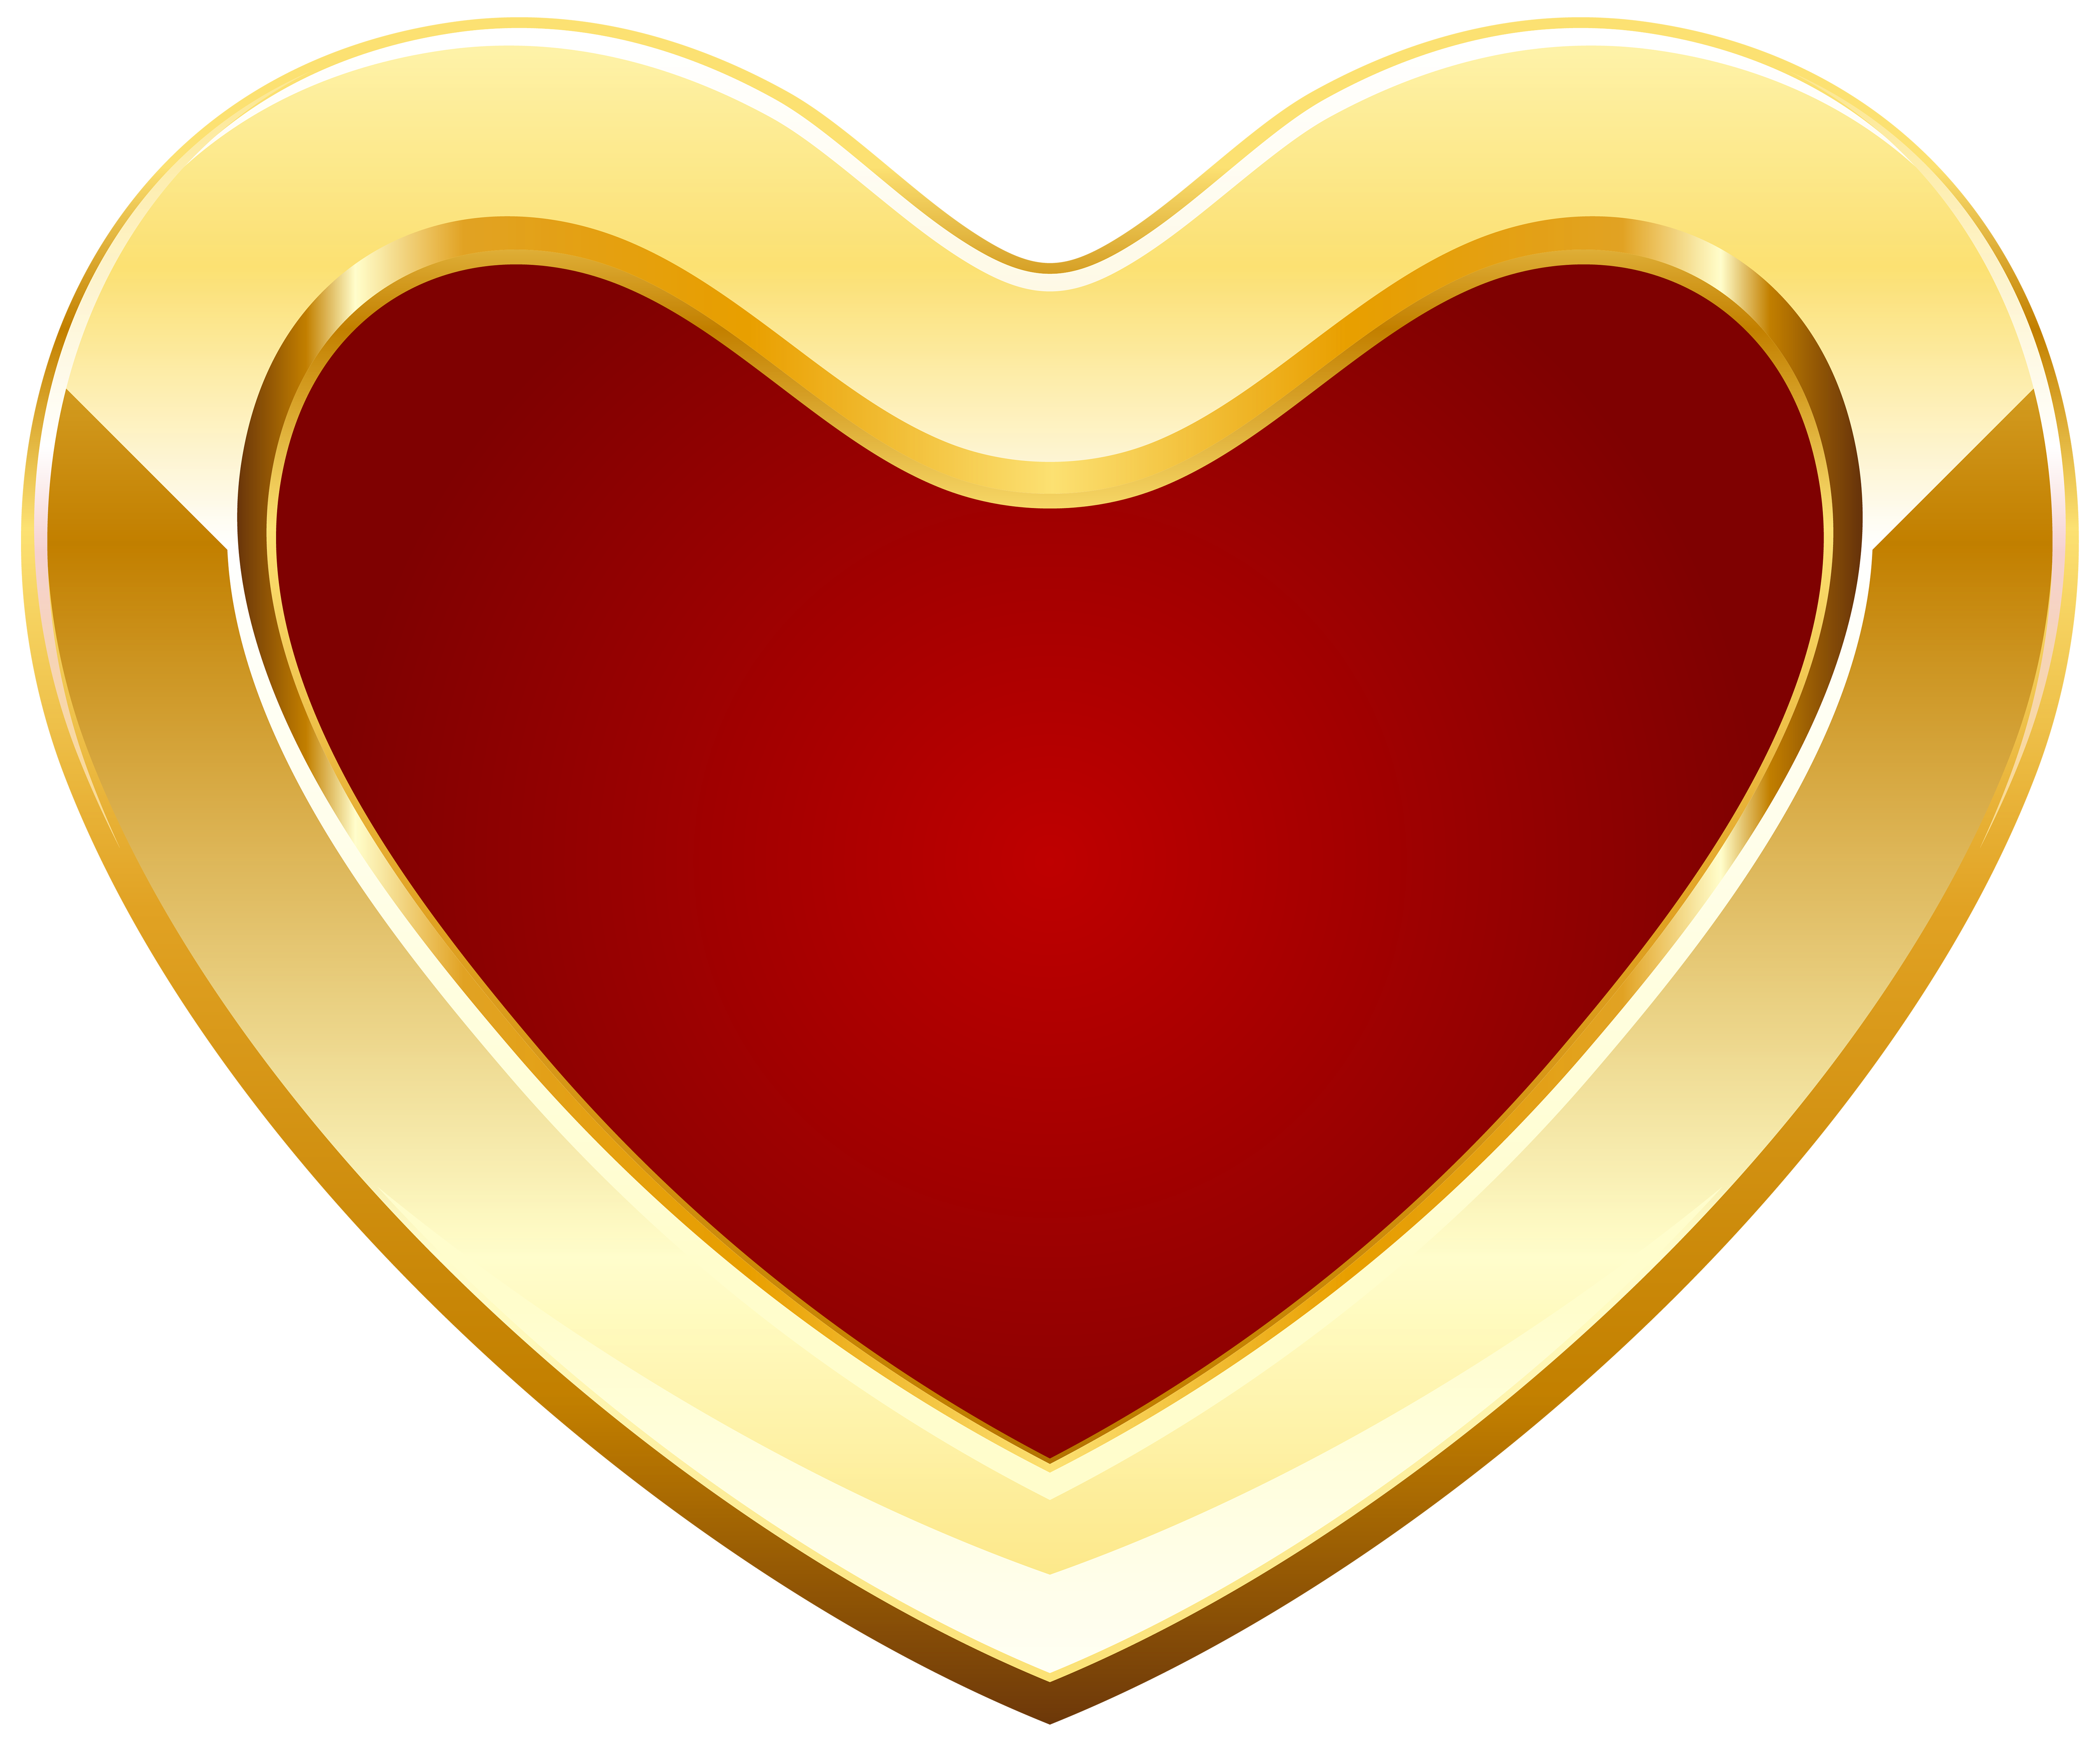 J Heart Wallpaper Transparent Png Clipart Free Download Ywd